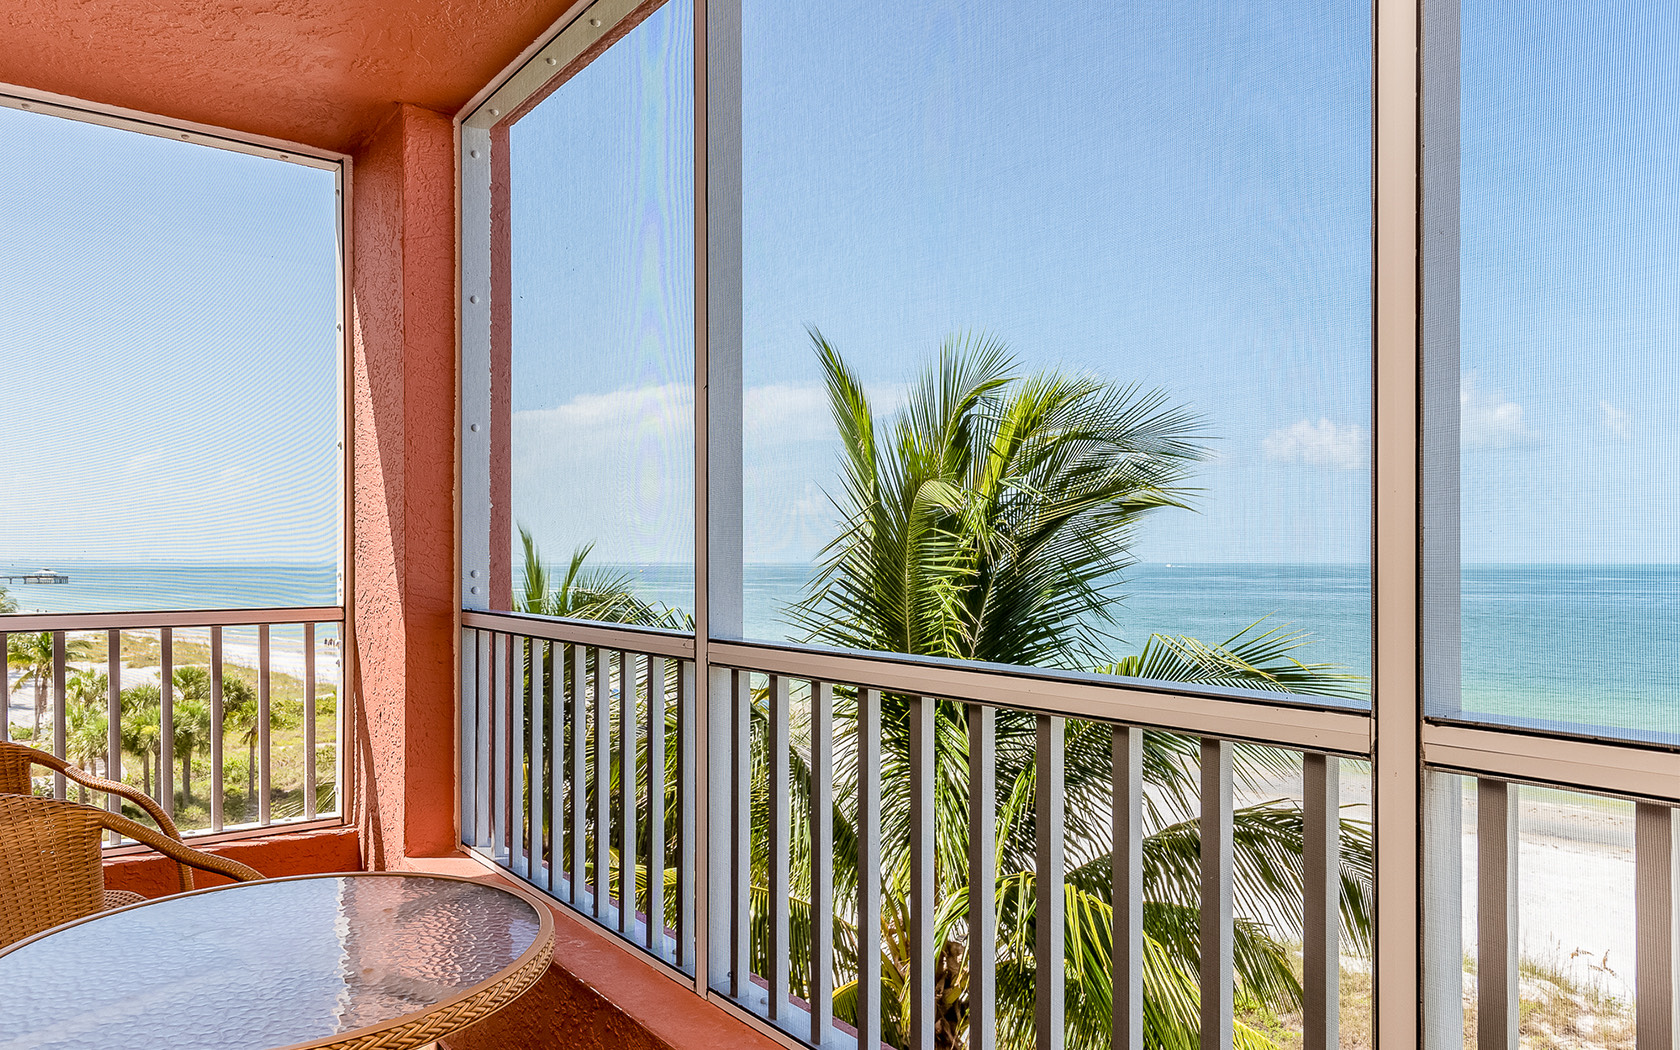 Casa Play Resort Gulfview balcony with dark pink walls